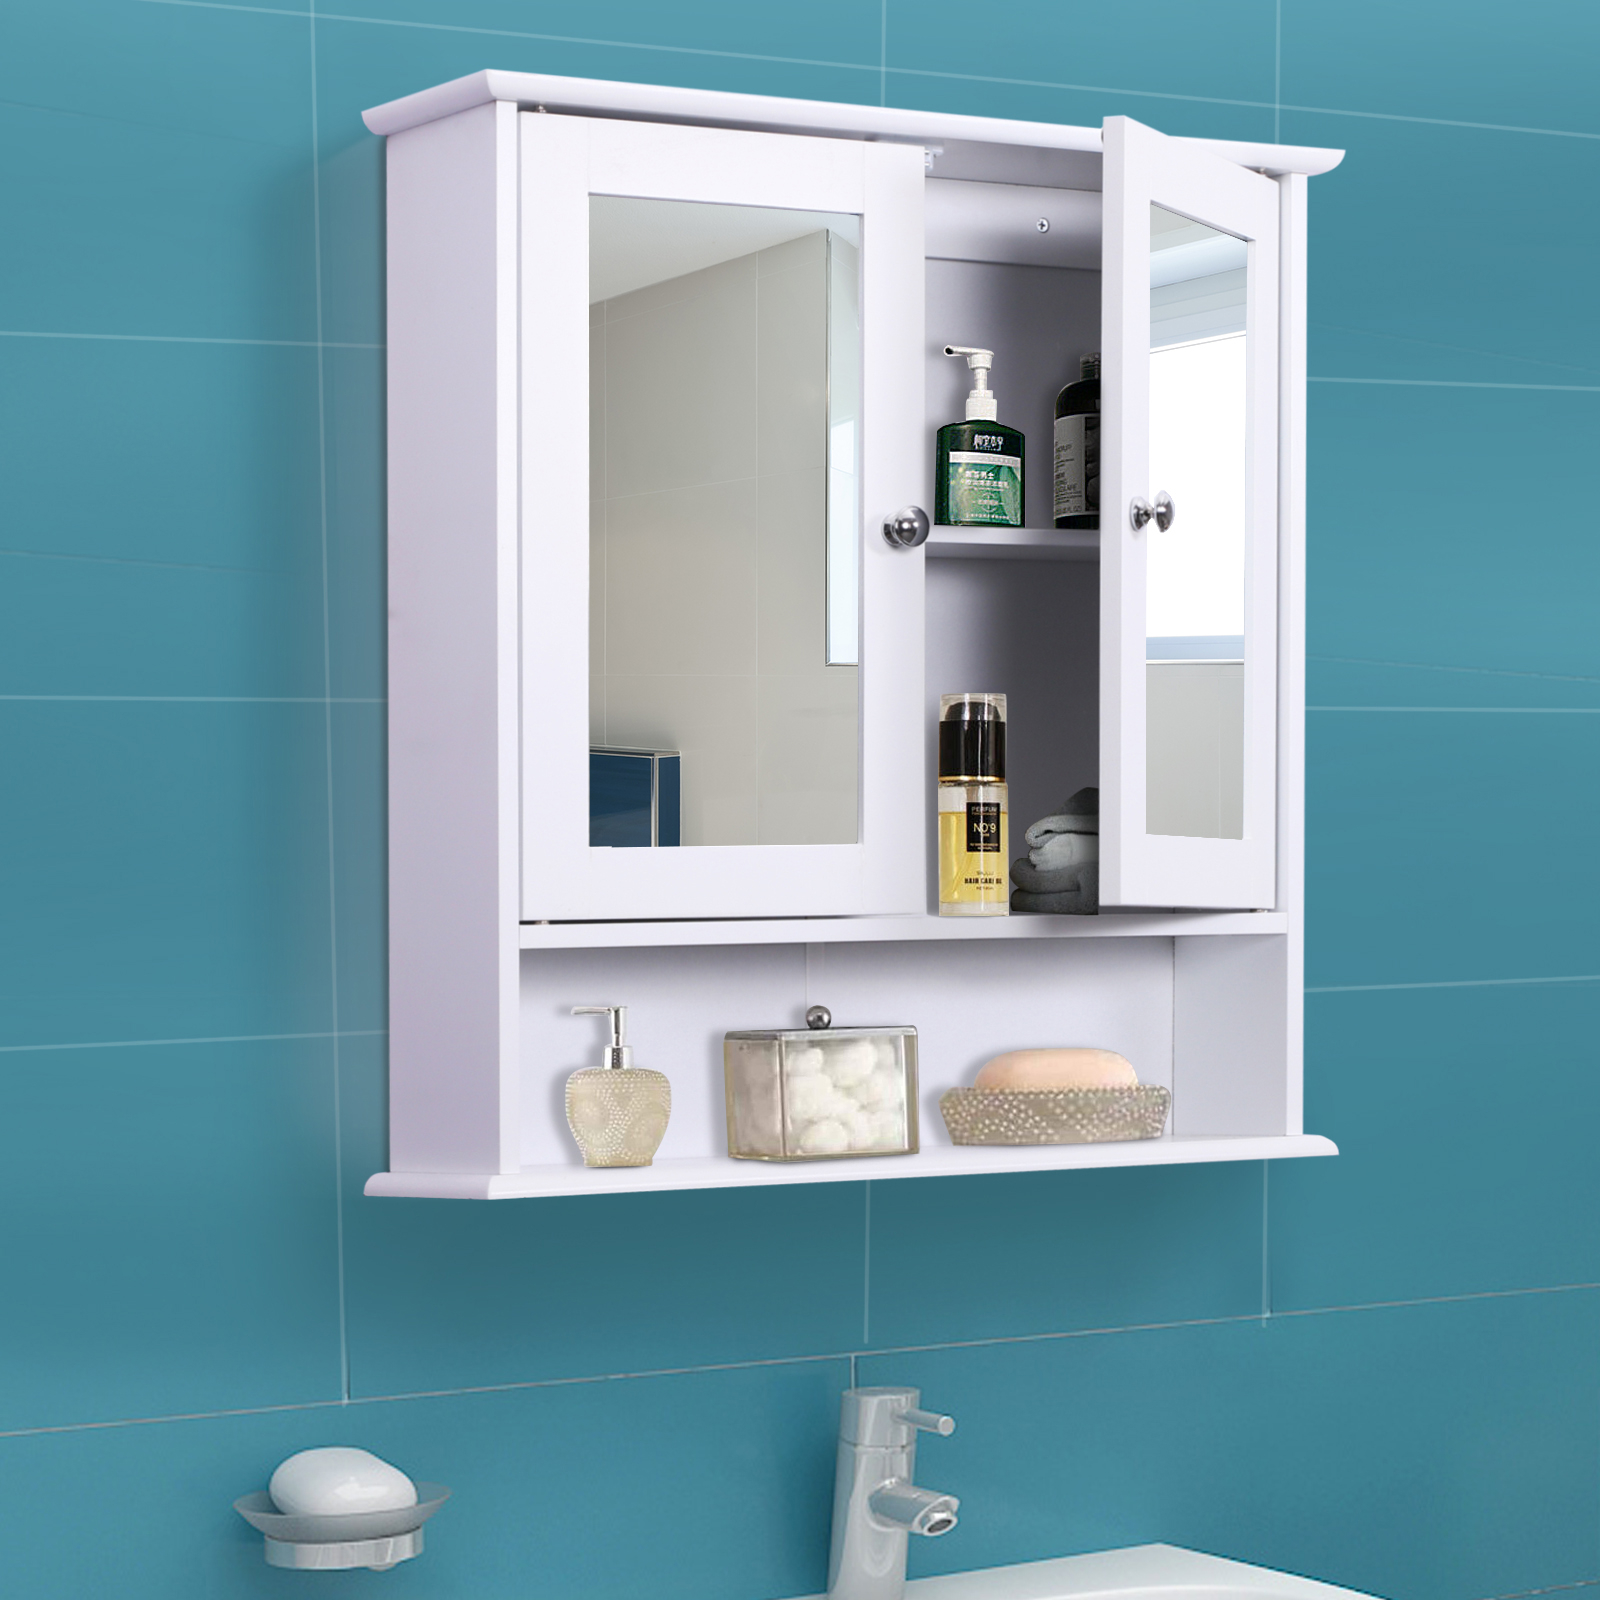 Details About Kleankin Bathroom Storage Cabinet Wall Medicine Cabinet Adjustable Shelf White intended for sizing 1600 X 1600